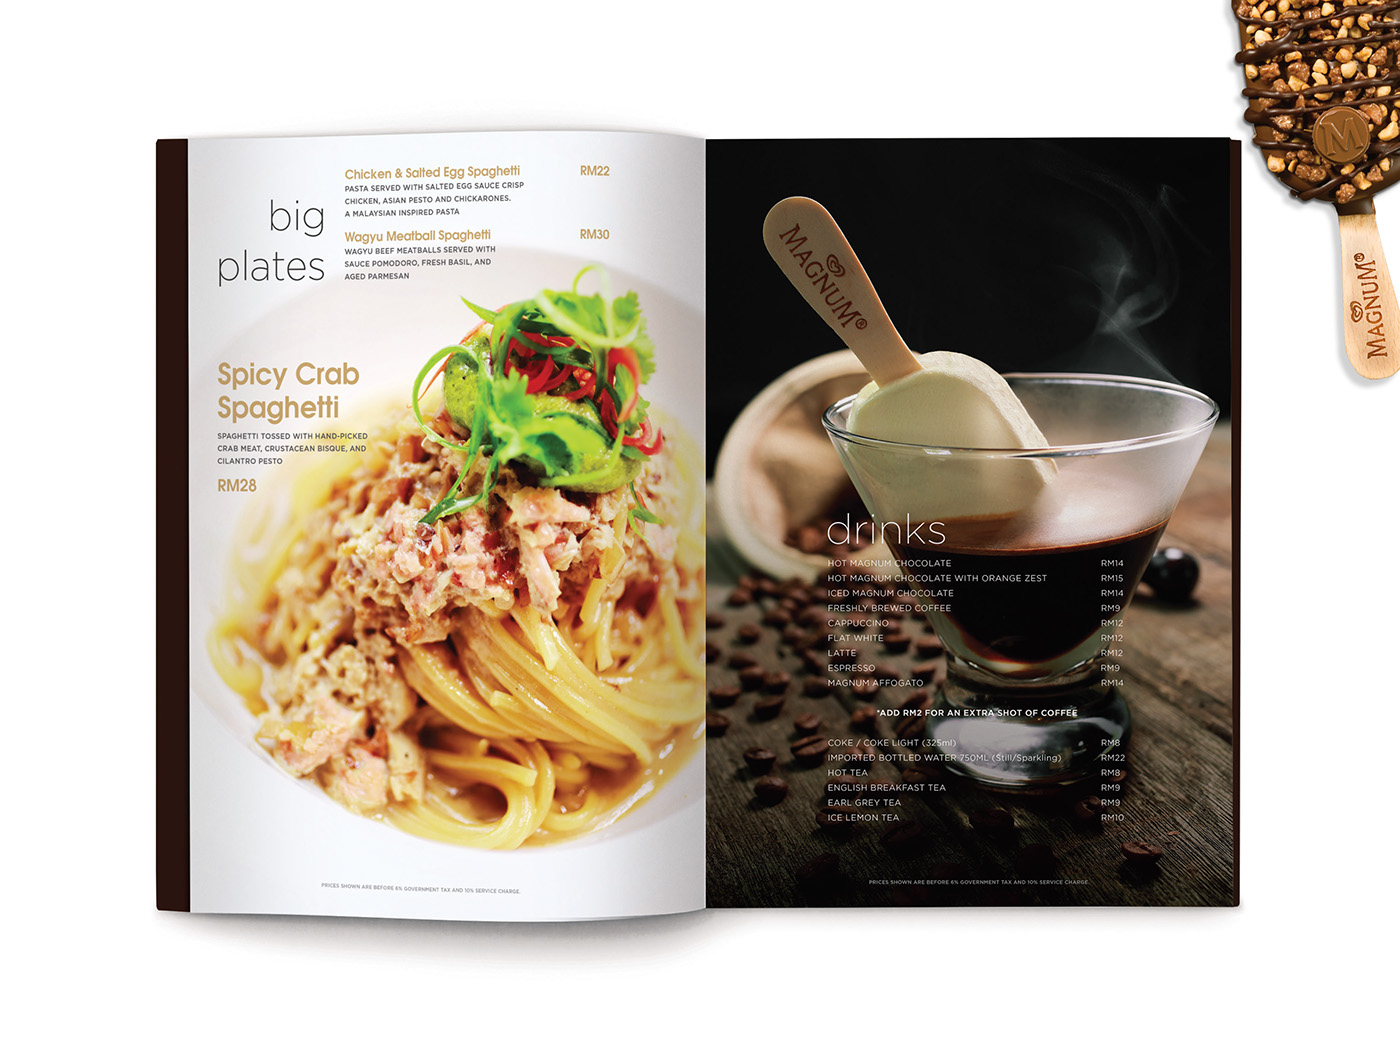 Magnum Pleasure Store menu design inner page layout design with beautiful food styling and photography of spicy crab pasta and drinks selection with ice cream